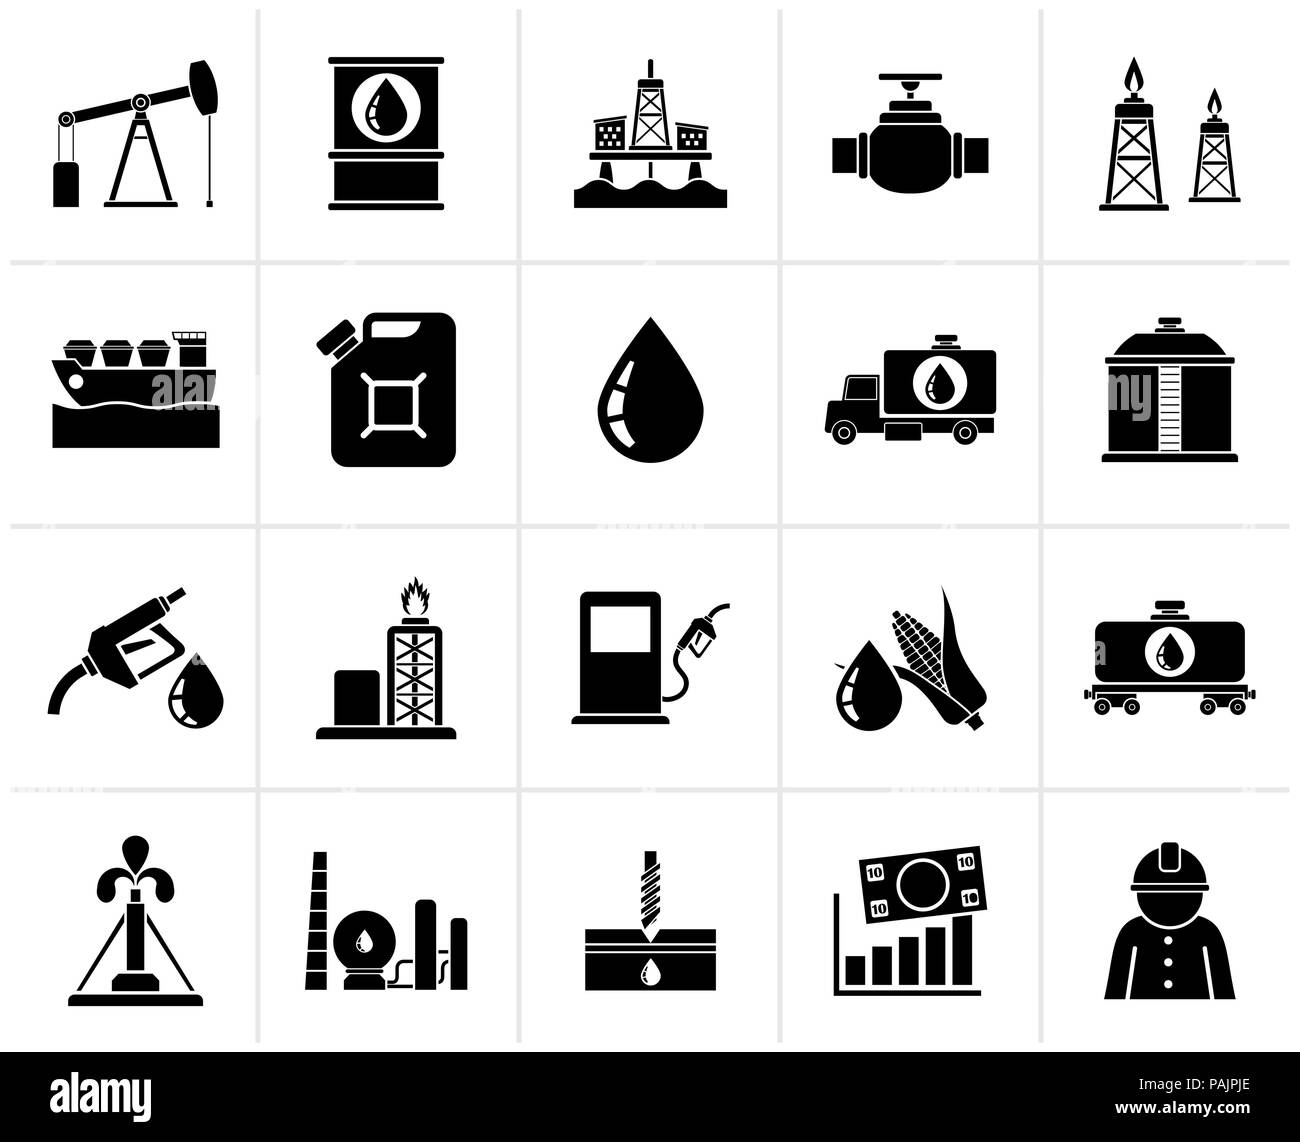 Black Oil industry, Gas production, transportation and storage icons - vector icon set - Stock Image